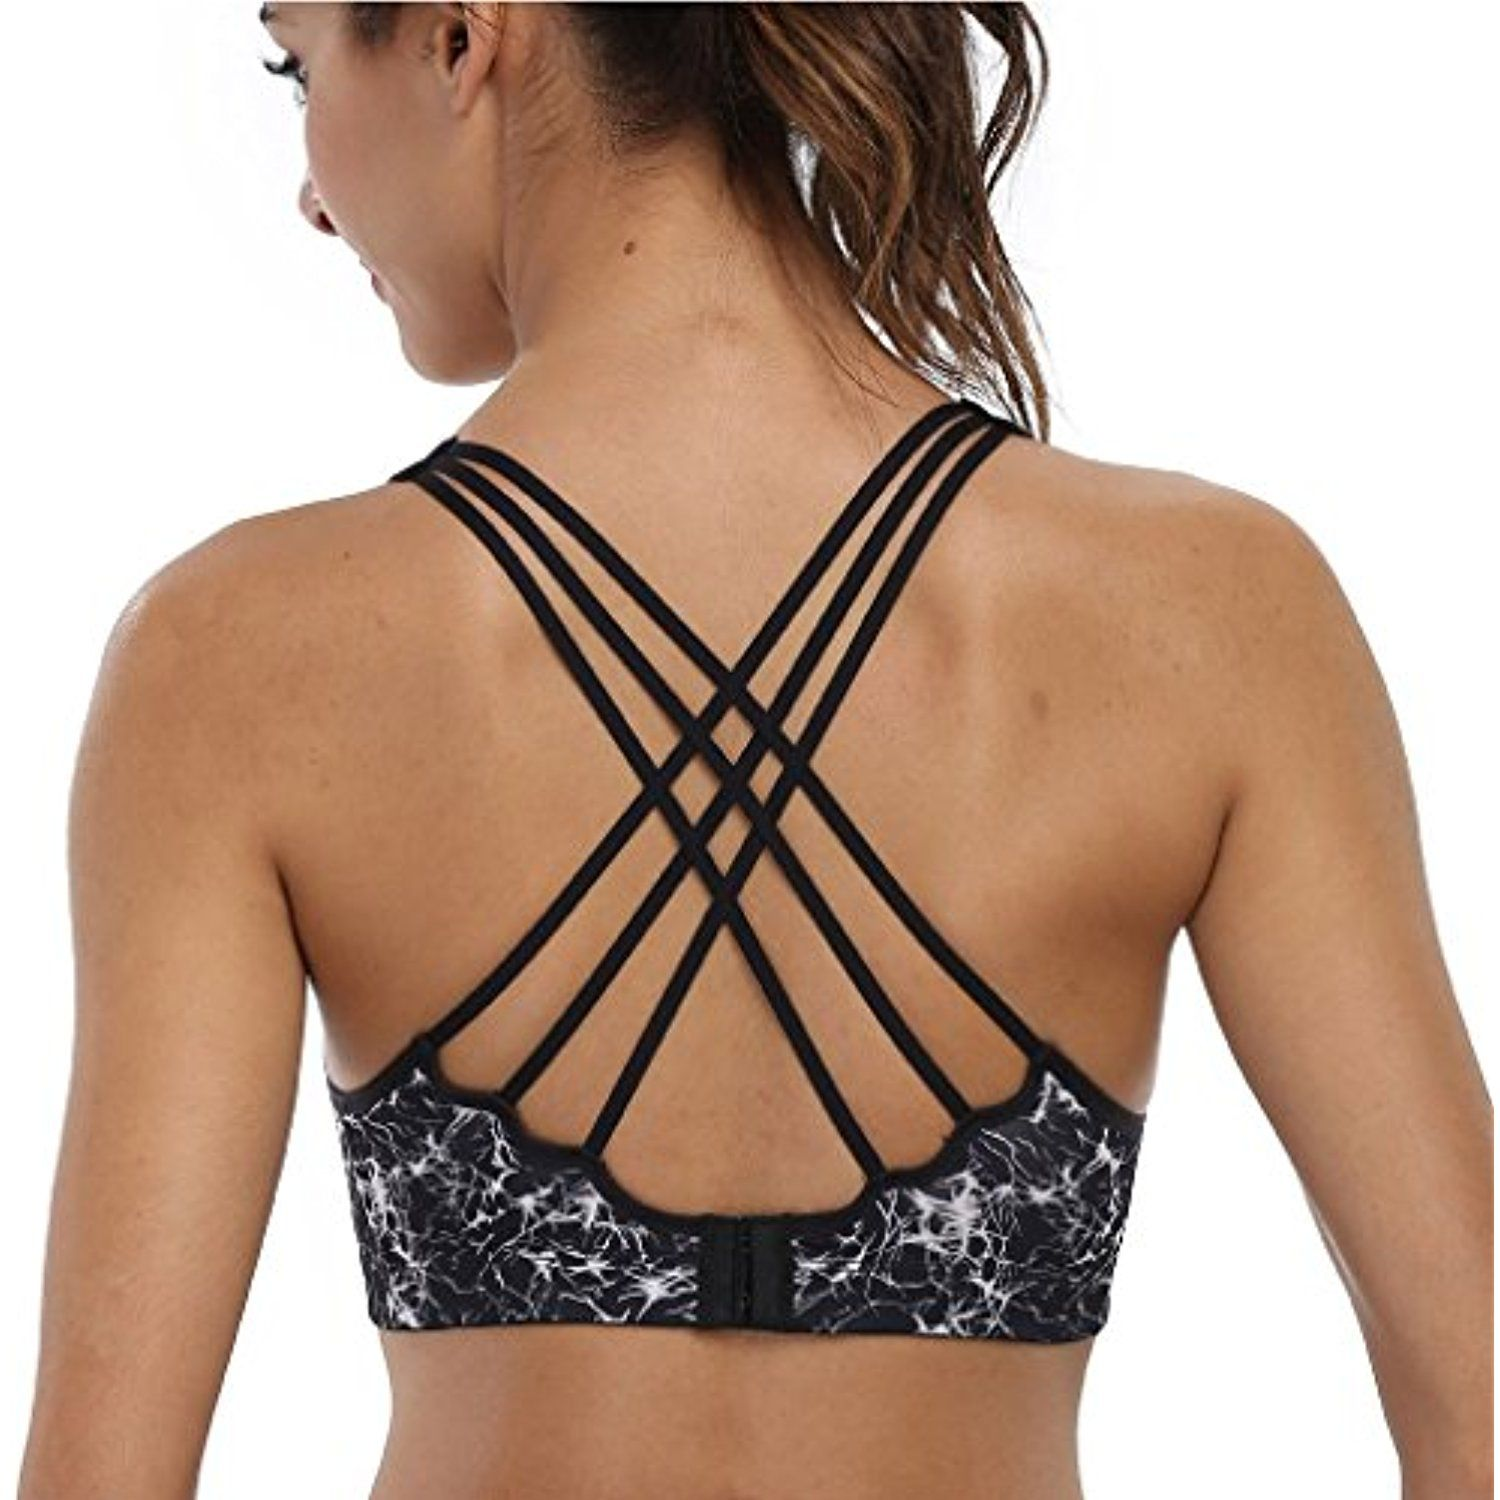 353db4f28 CharmLeaks Womens WorkOut Wirefree CrossBack Padded Running Yoga Sports  Sport Bra -- Be sure to